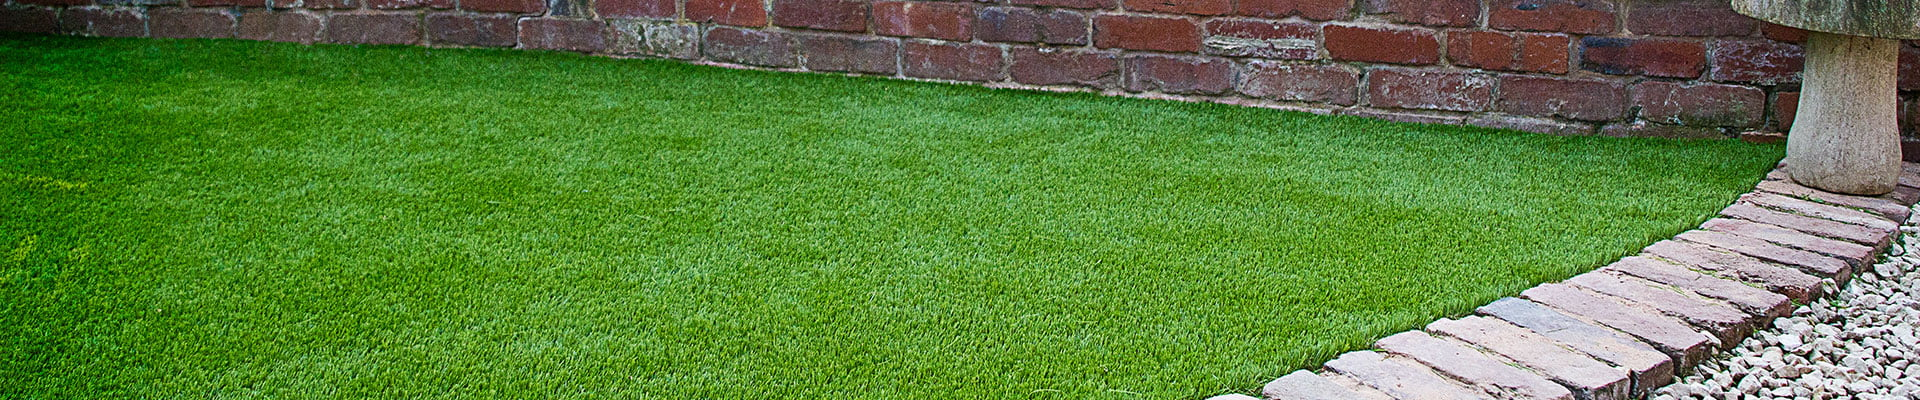 Artificial grass can transform any area and is ideal for front lawns, back gardens, exhibitions, play areas, roof gardens and balconies.